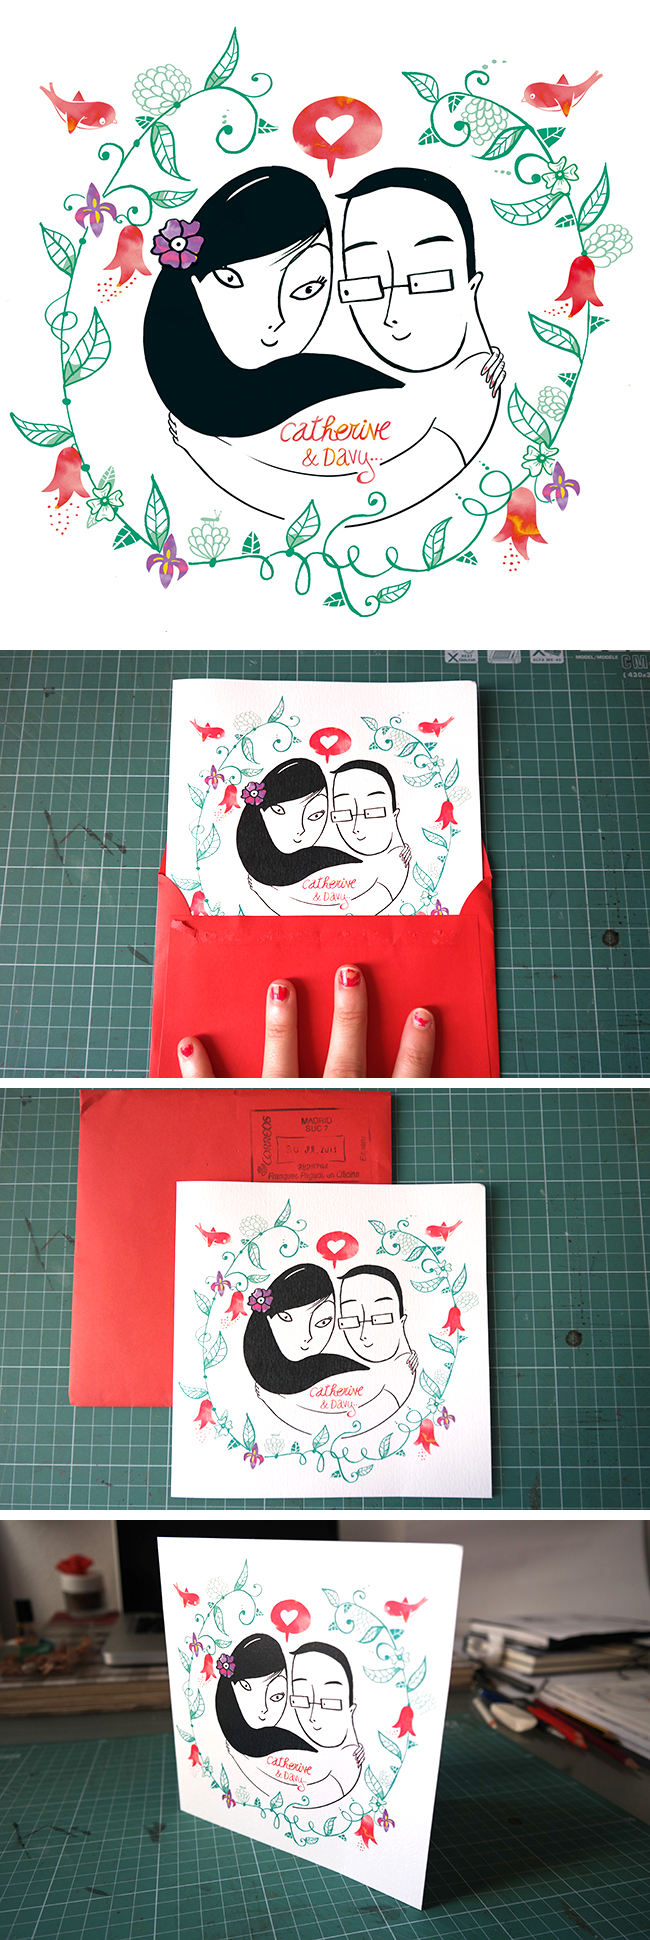 wedding_invitation_amaia_arrazola6 copy